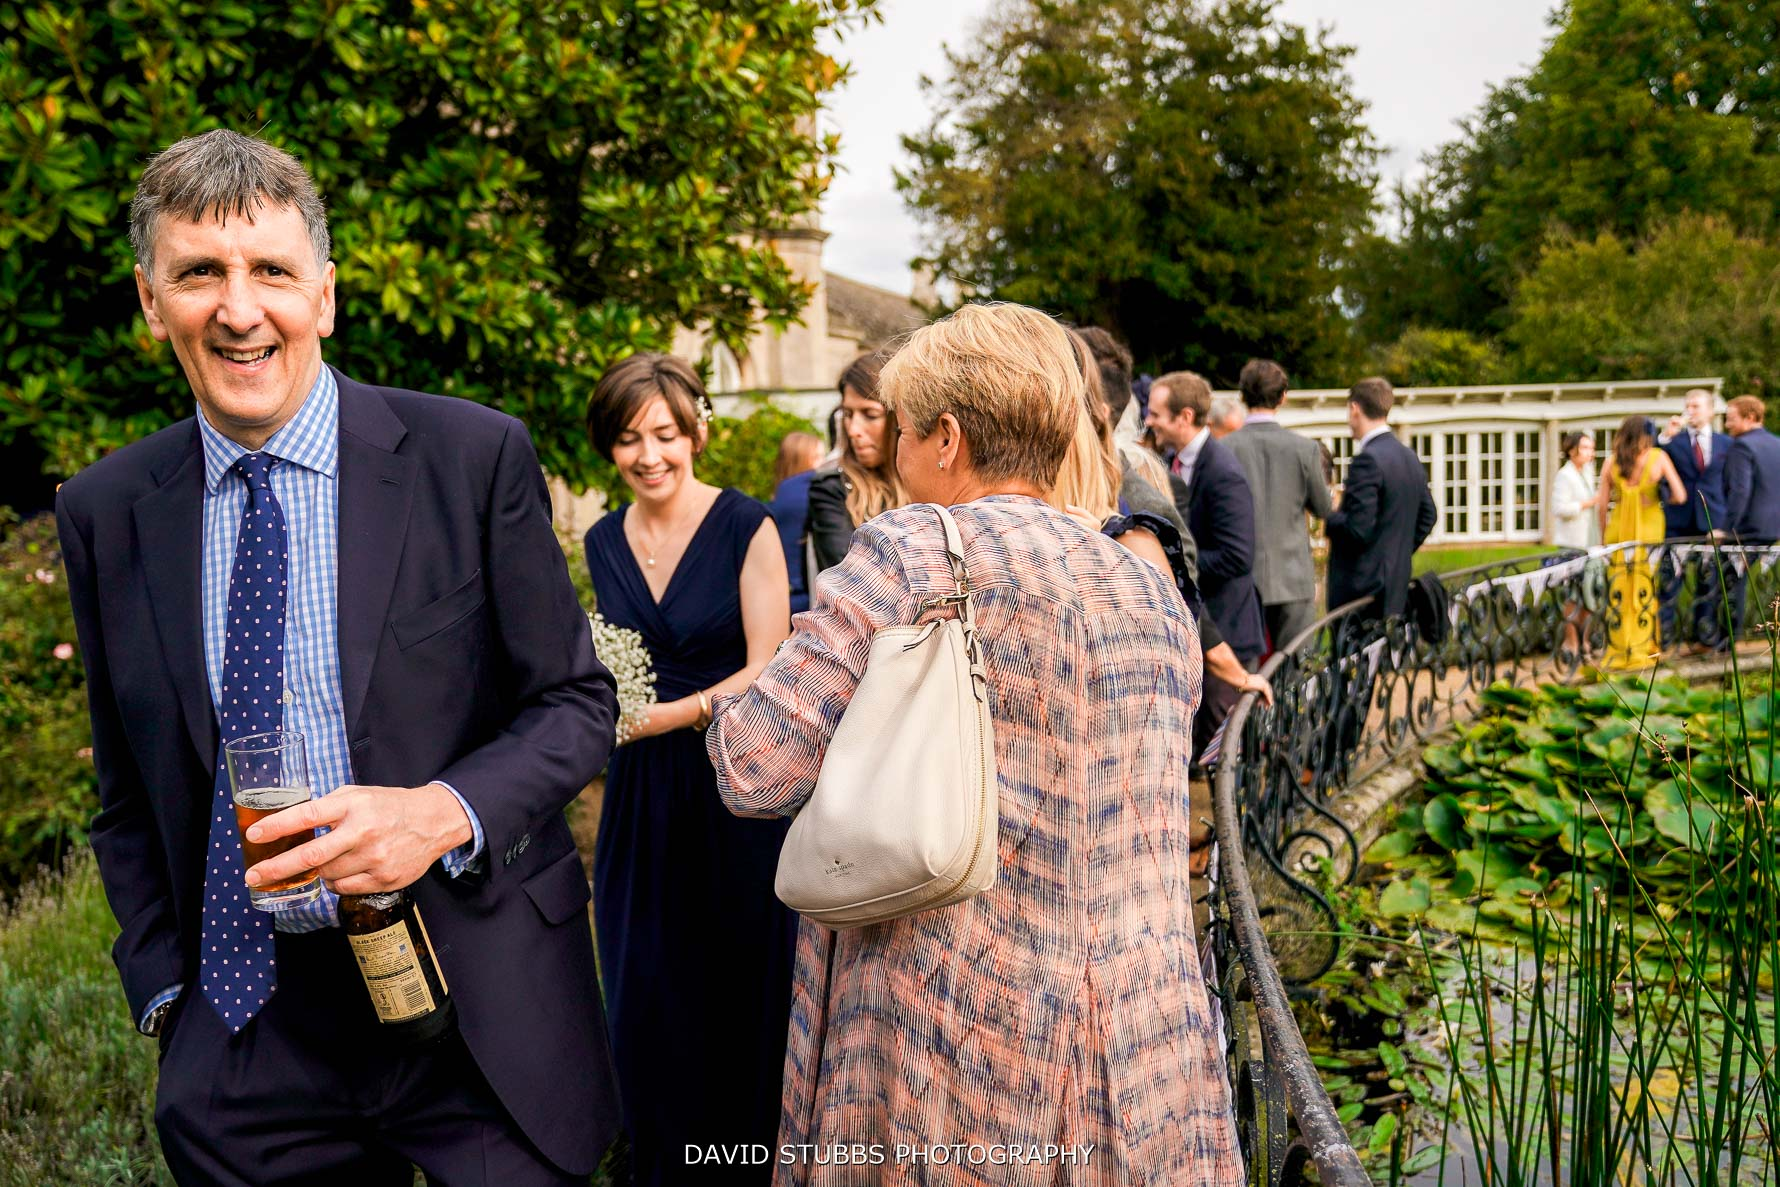 outside in the rose garden for reception